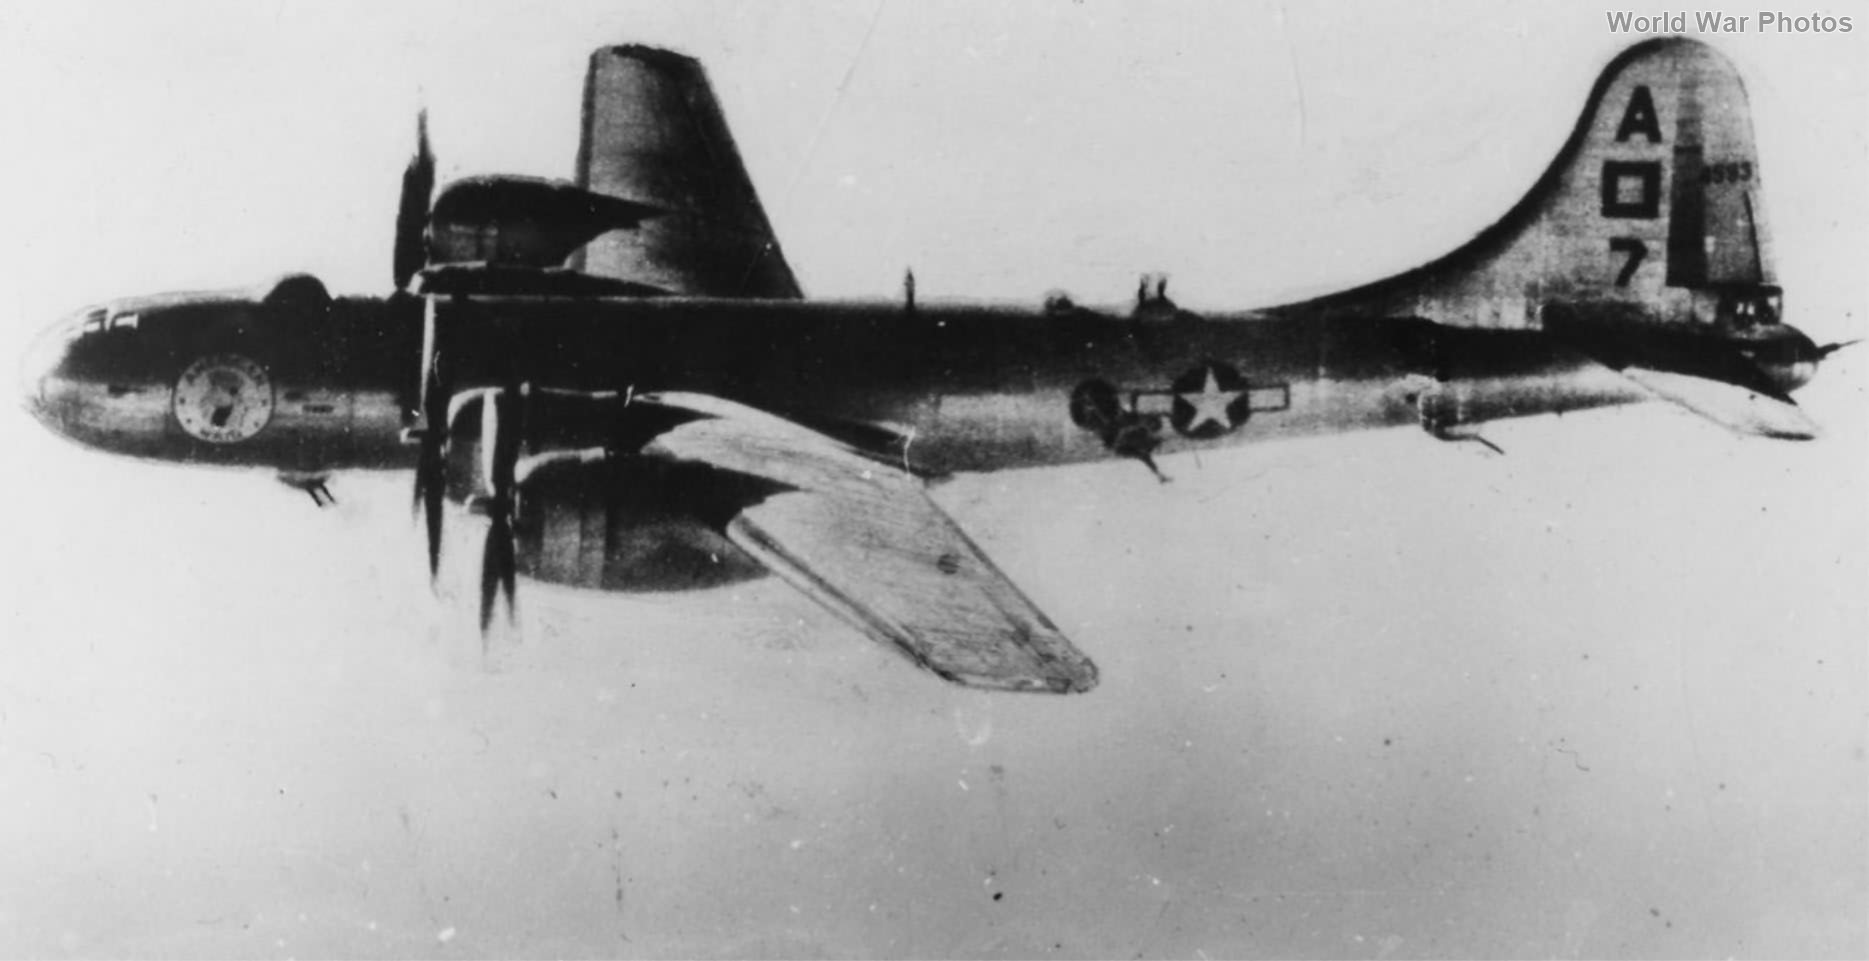 """B-29 42-24593 """"American Maid"""" of the 869th Bomb Squadron, 497th Bomb Group"""